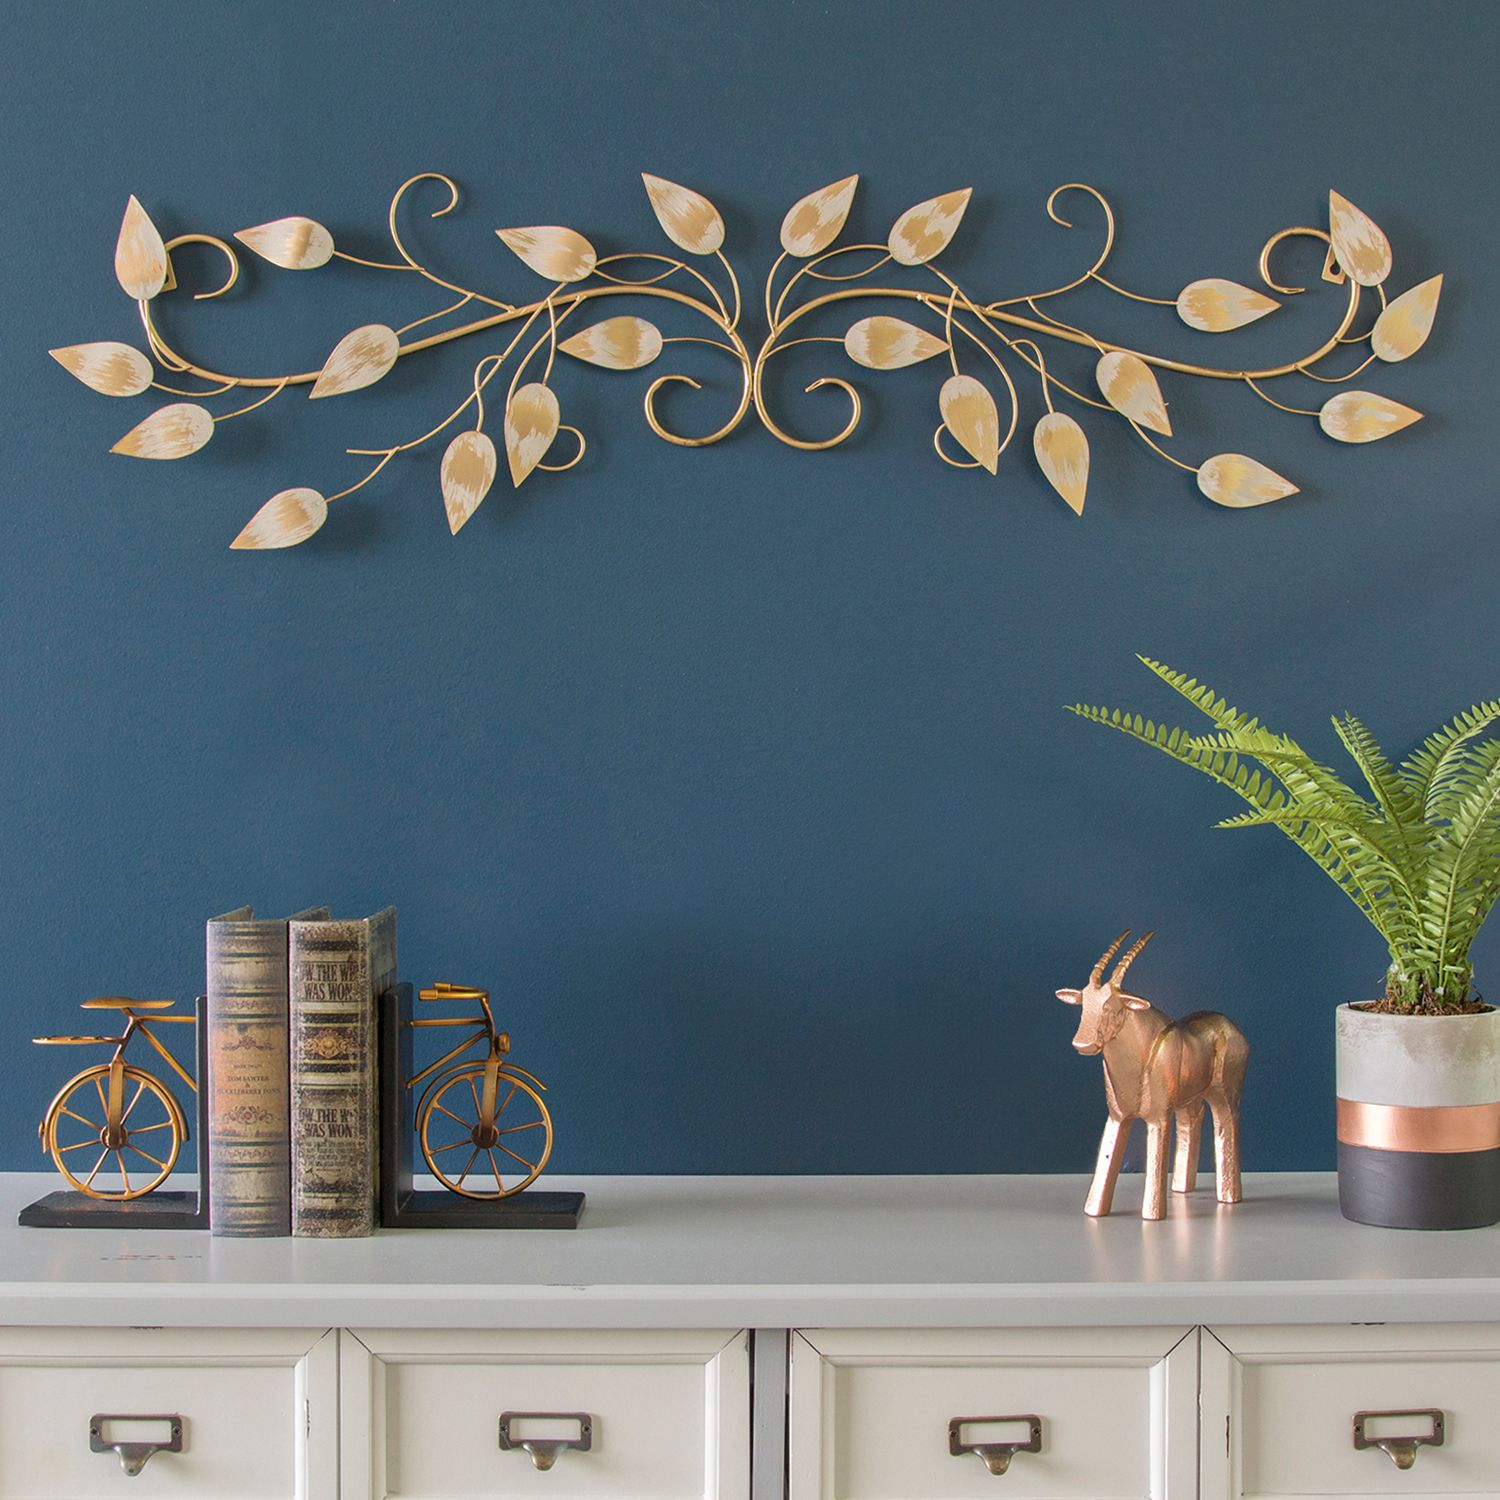 Stratton Home Decor Leaves Over The Door Wall Decor